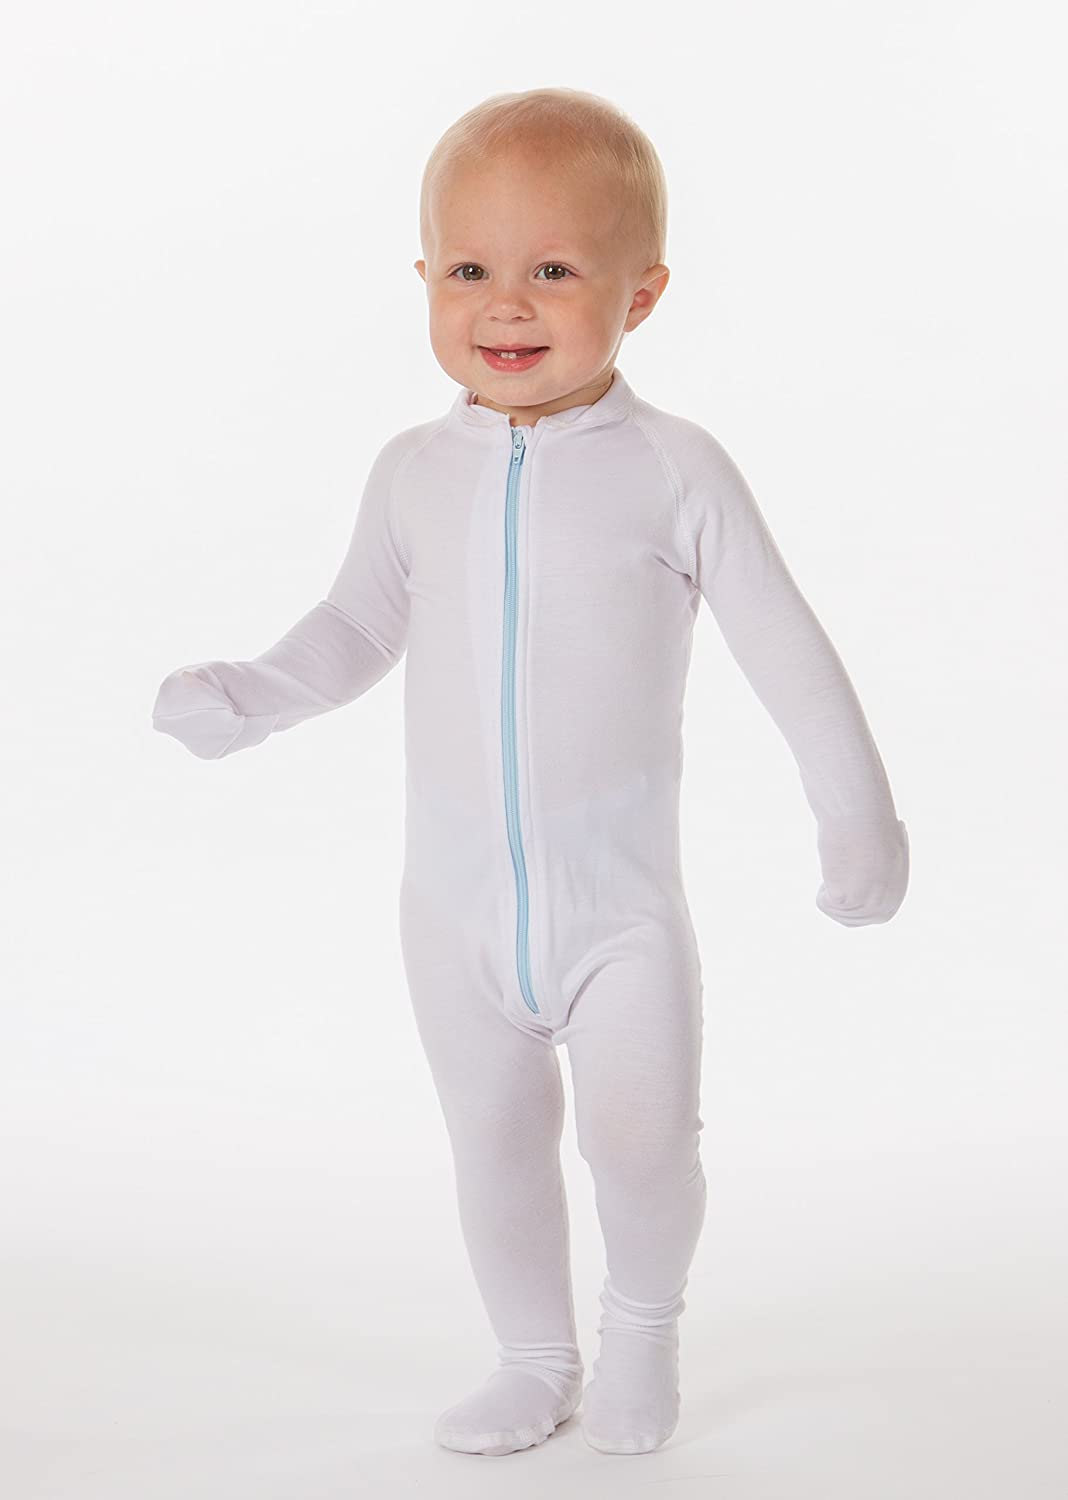 8e6772b600d6 Best Baby Clothes – Best Onesies For Sensitive Skin And Eczema in 2019 5